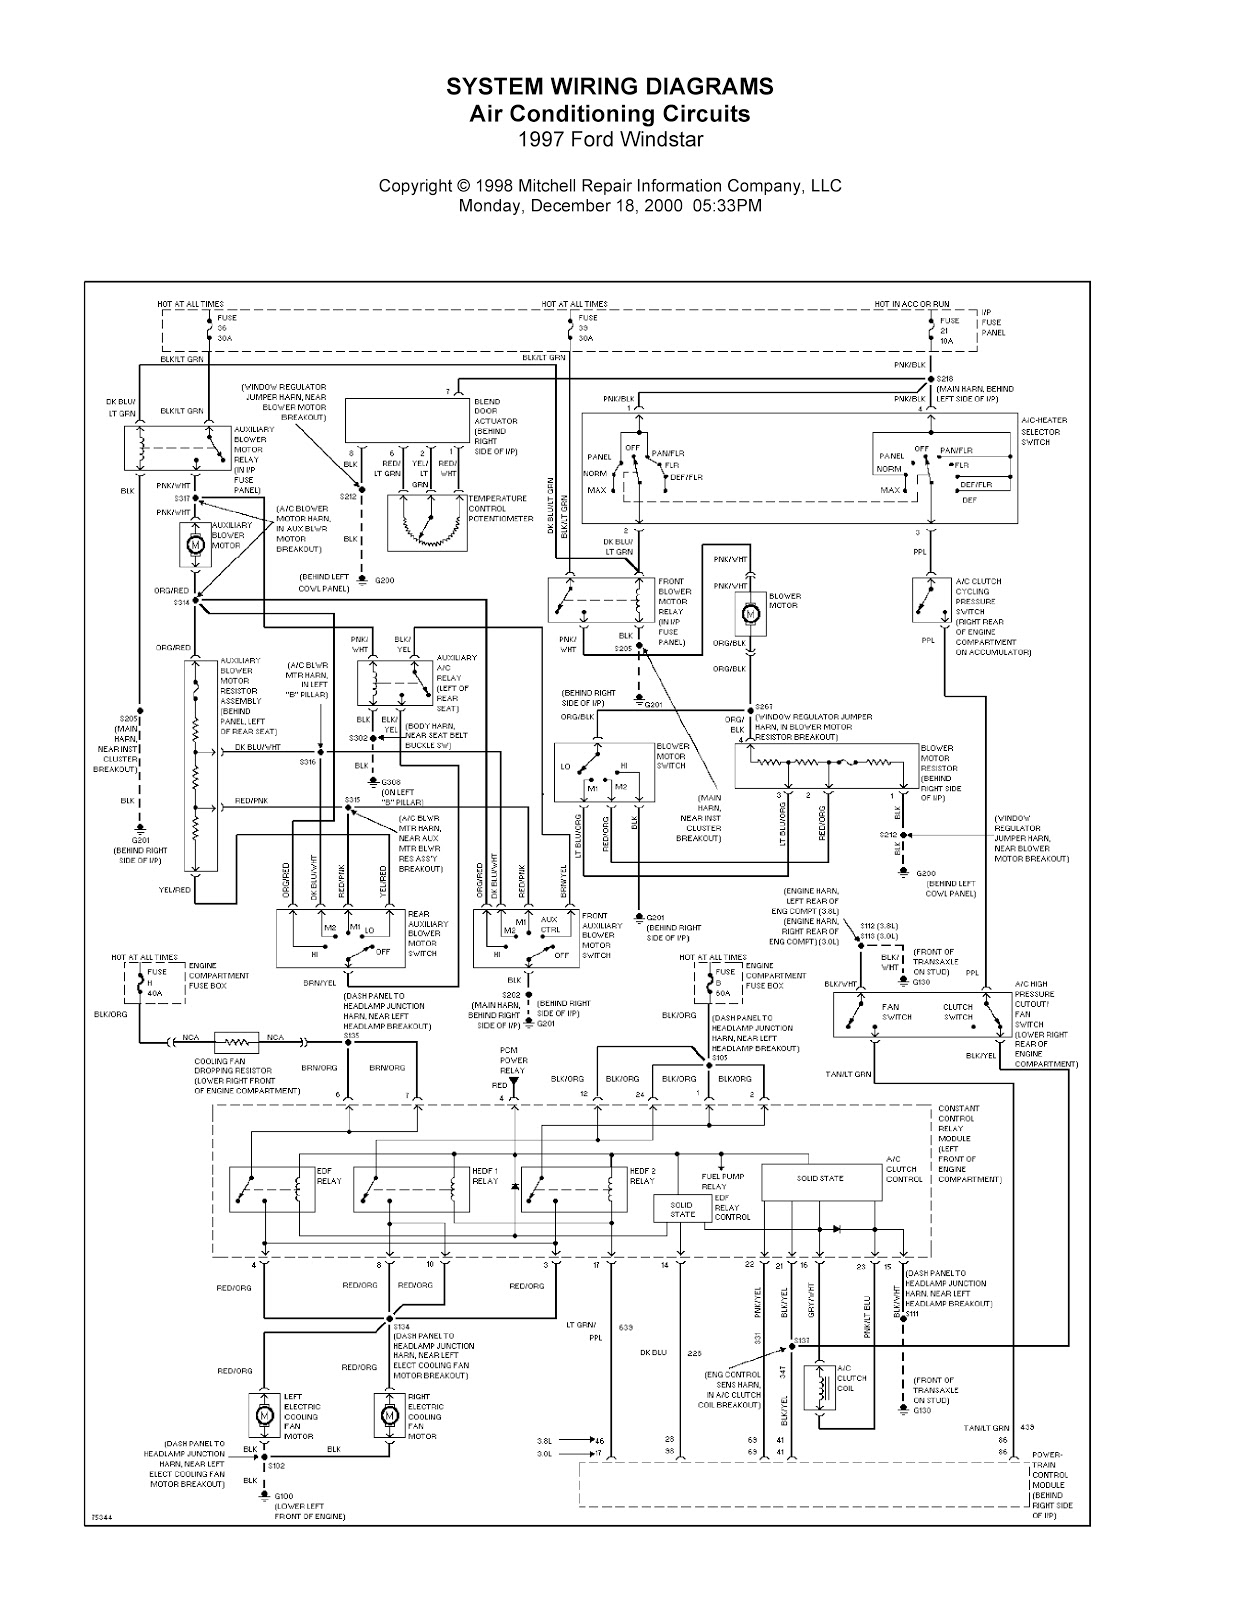 0001 2000 ford windstar wiring diagram ford windstar 3 8 engine diagram  at honlapkeszites.co